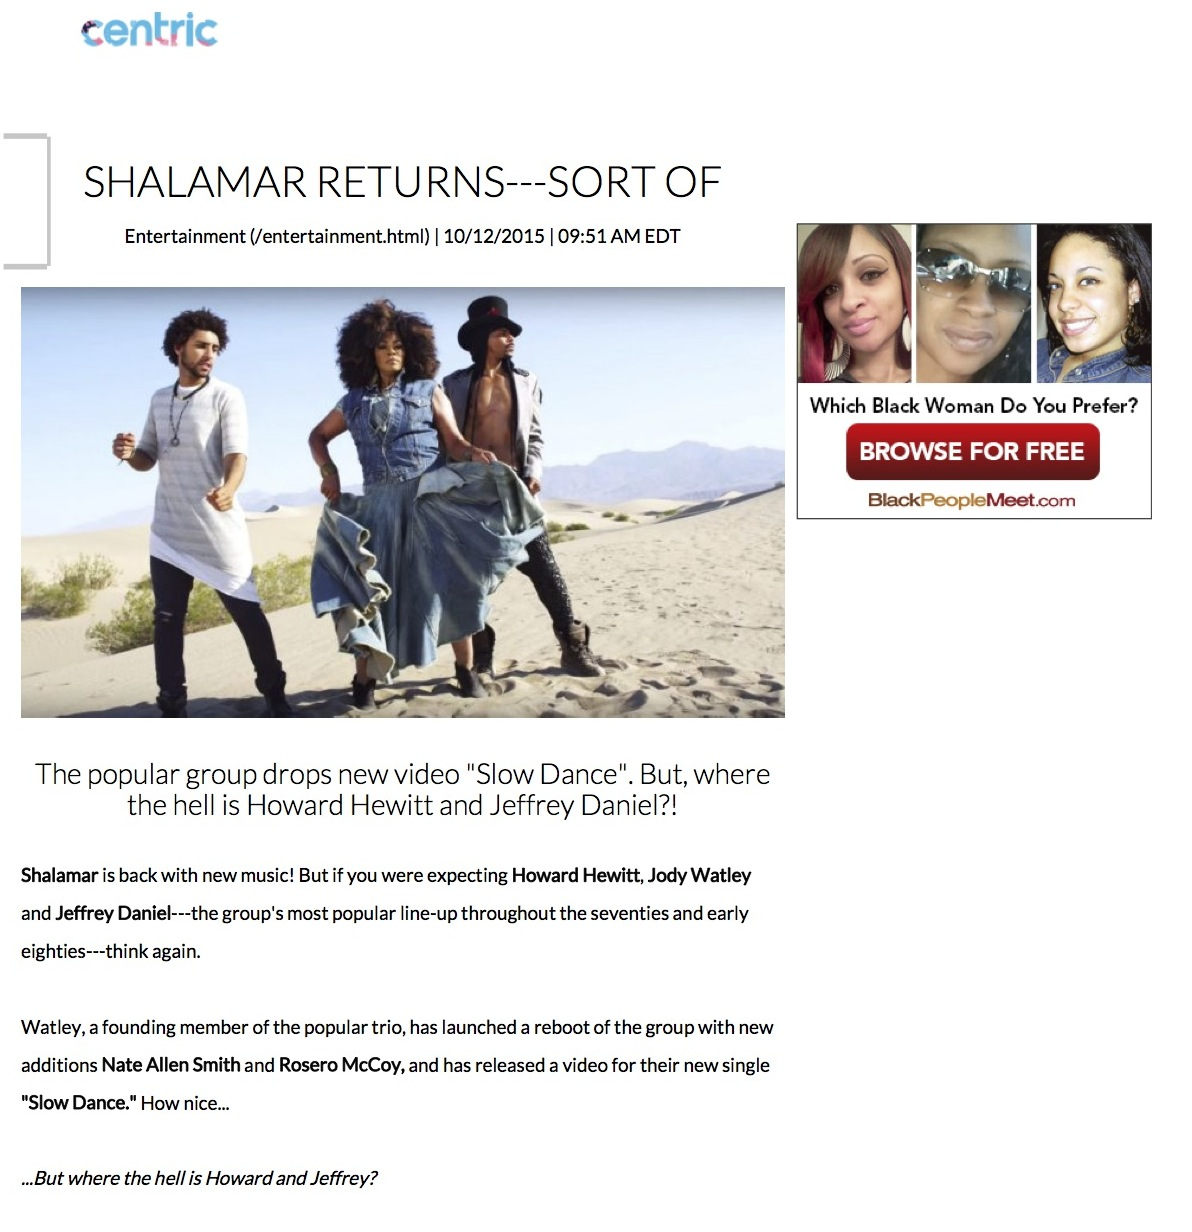 31_centrictvshalamar-returns-sort-of-music-entertainment-articles-centric